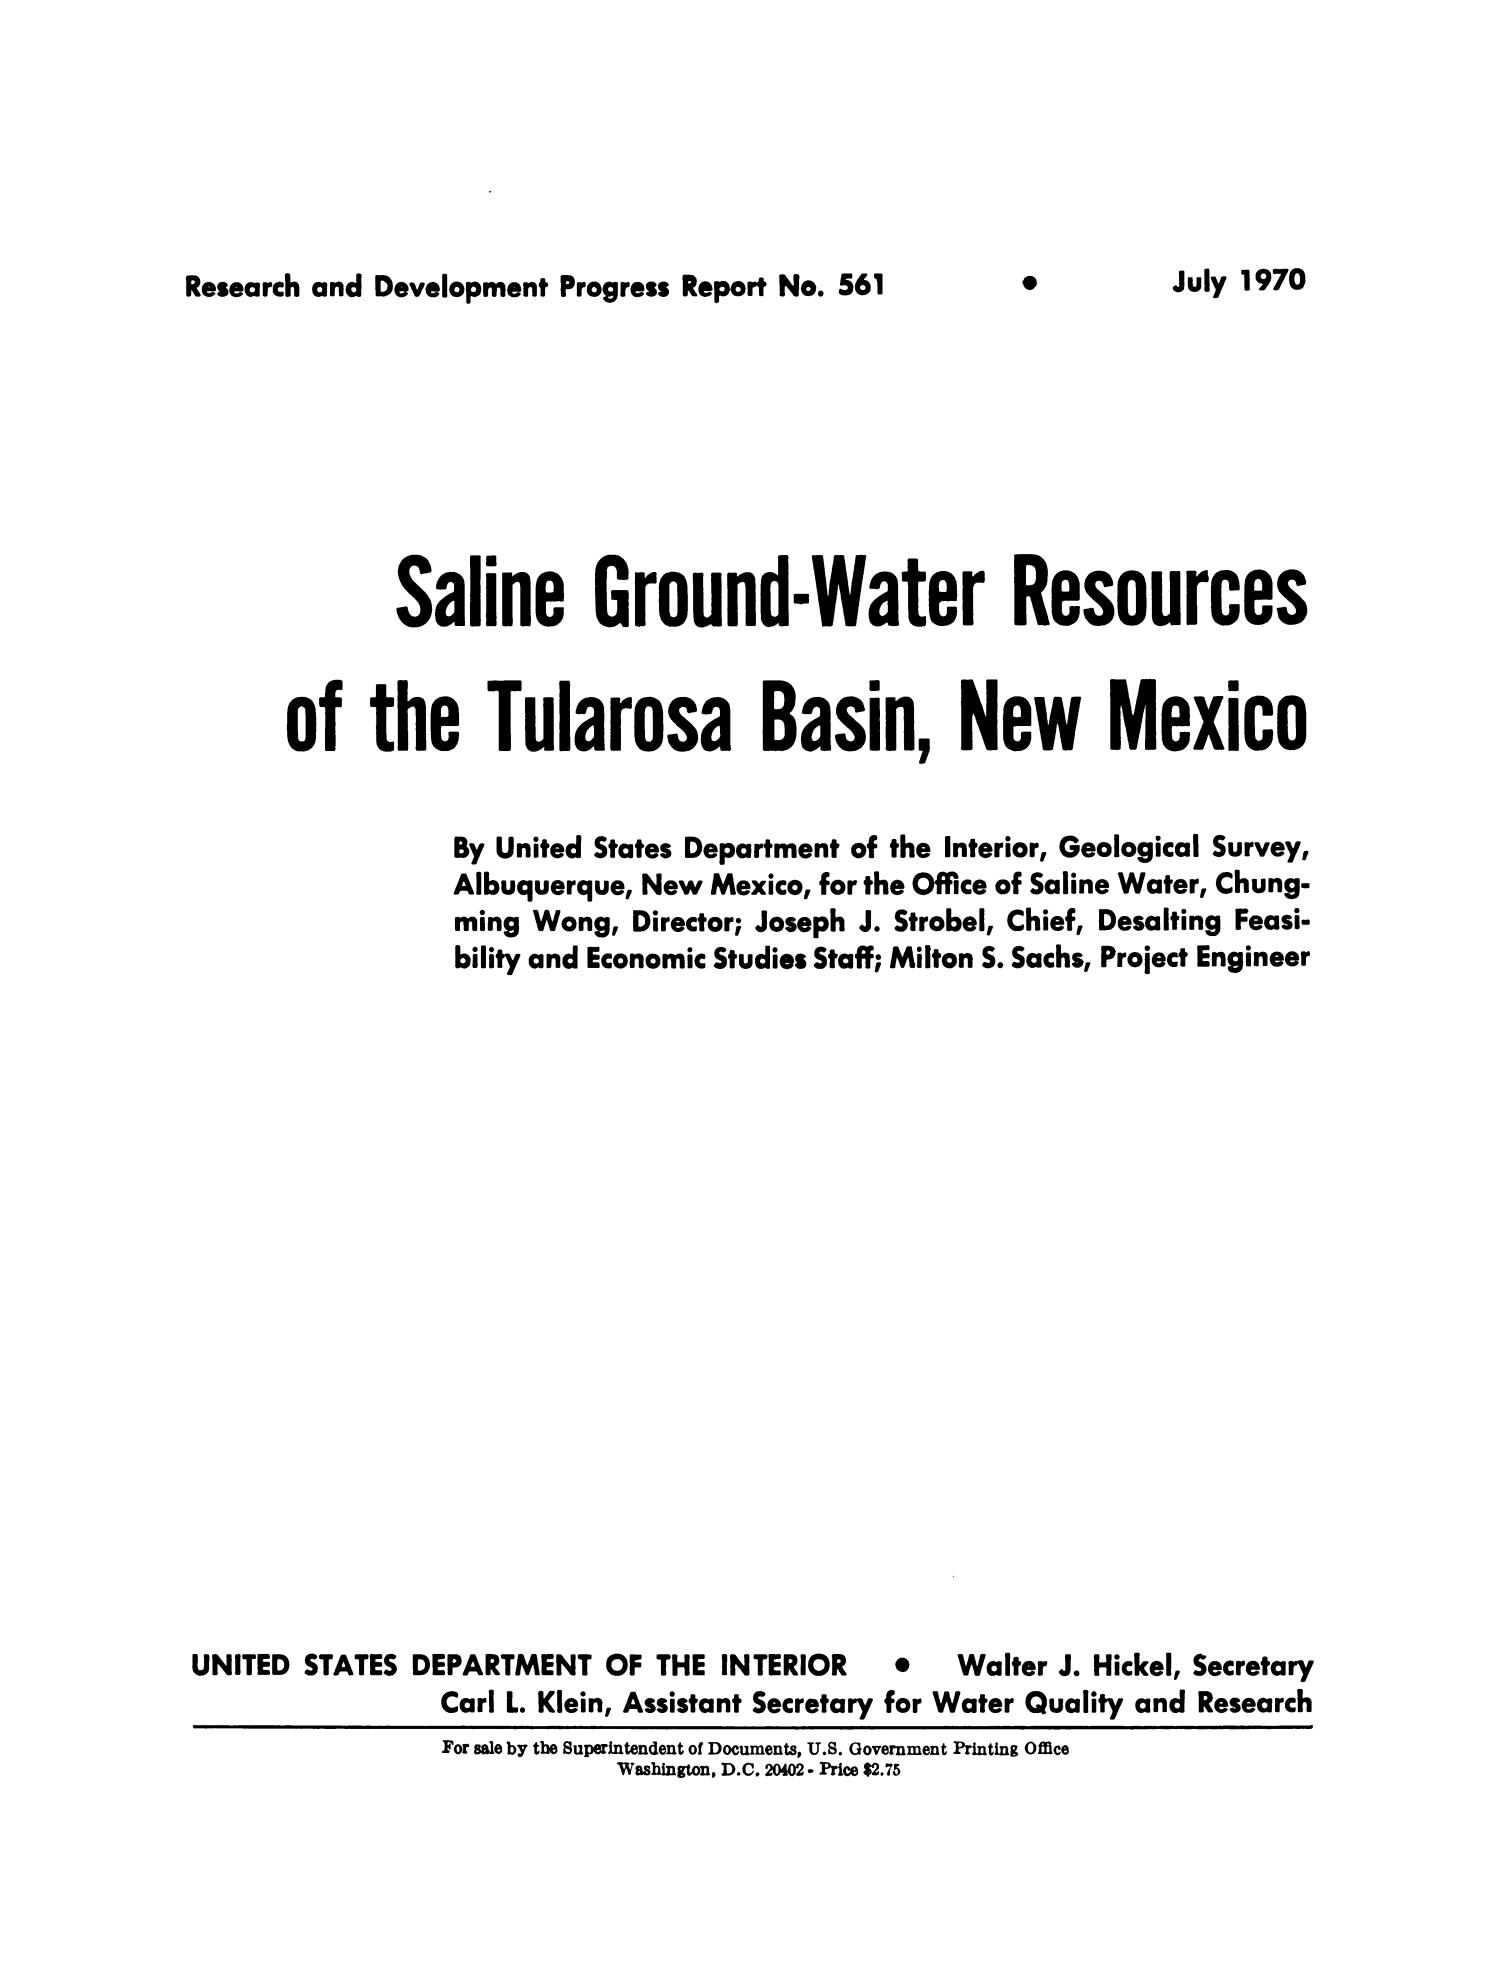 Saline Ground-Water Resources of the Tularosa Basin, New Mexico                                                                                                      II